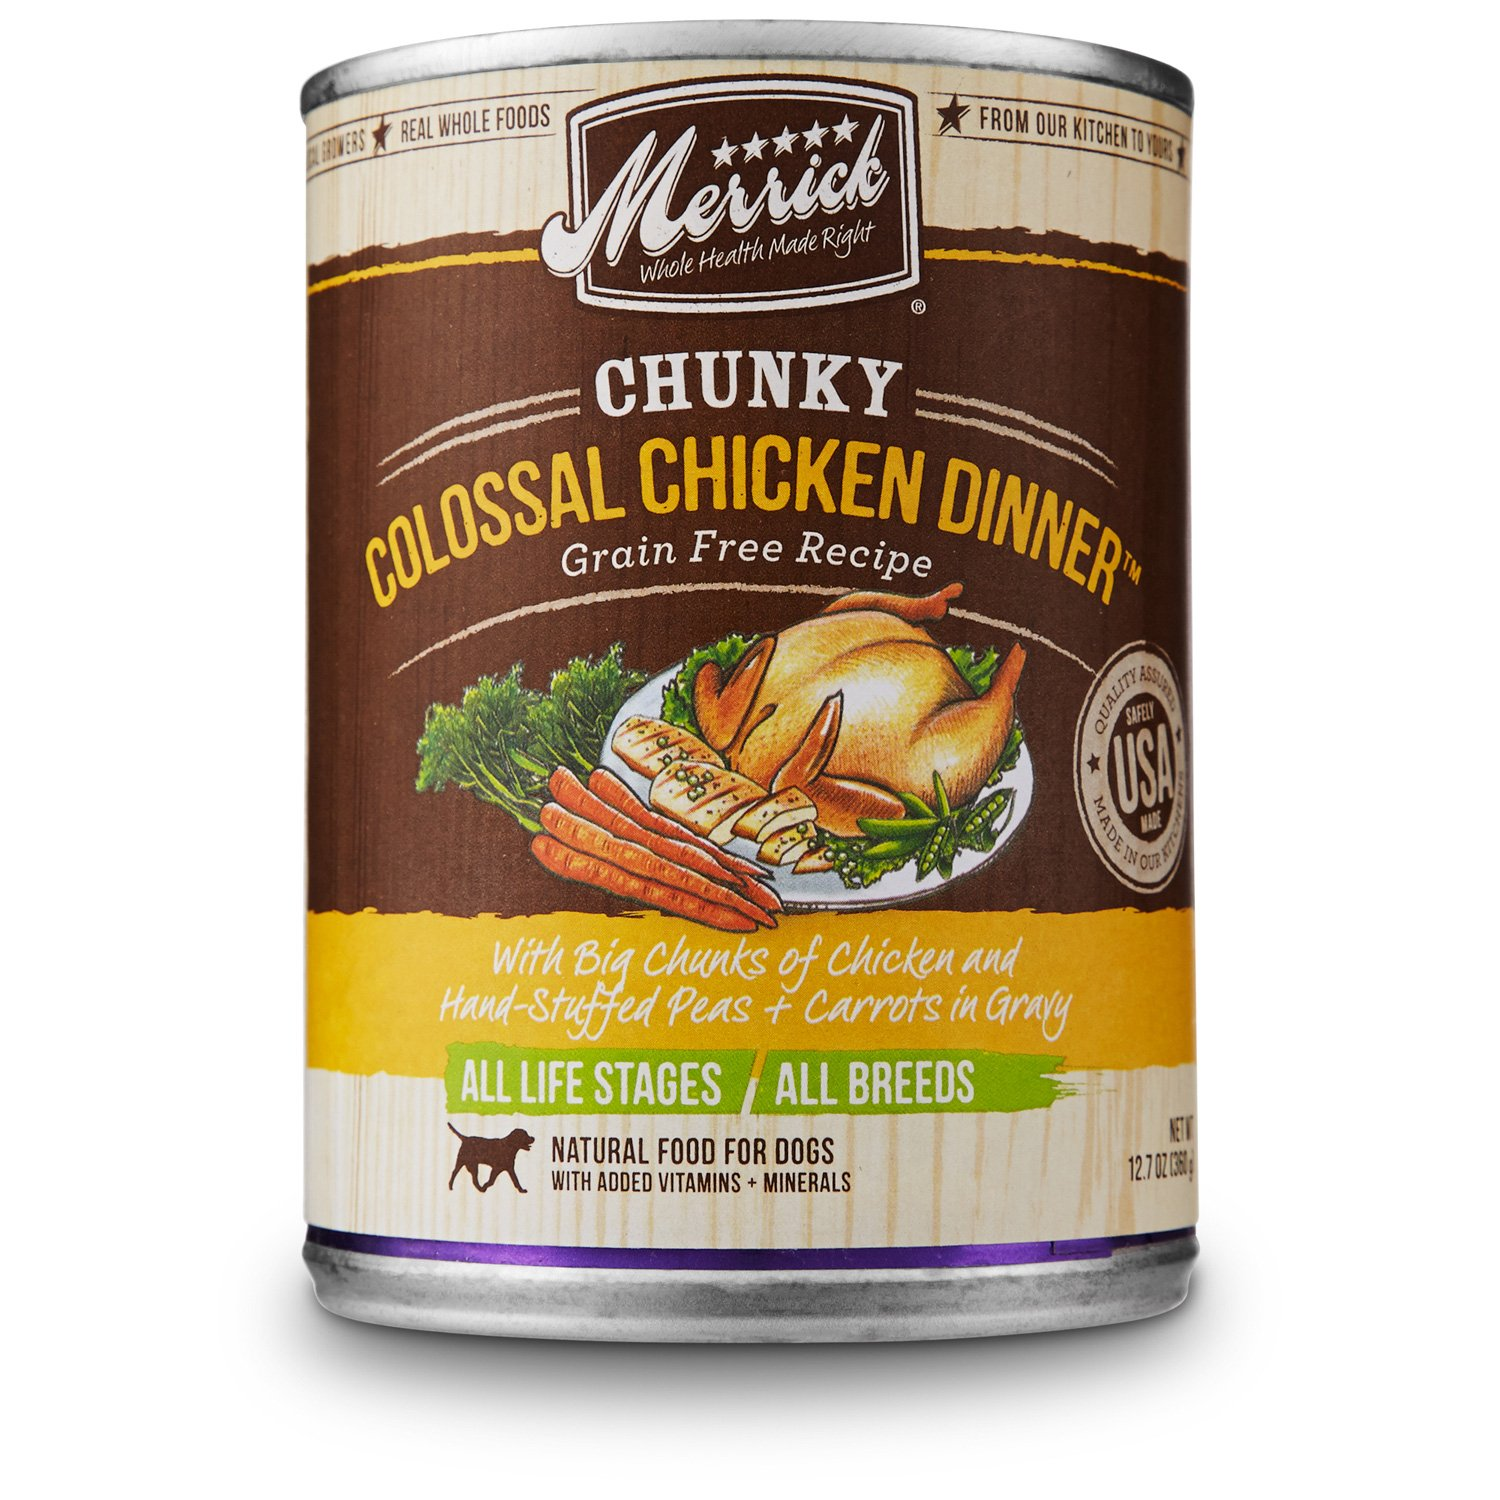 Canned Dog Food Images